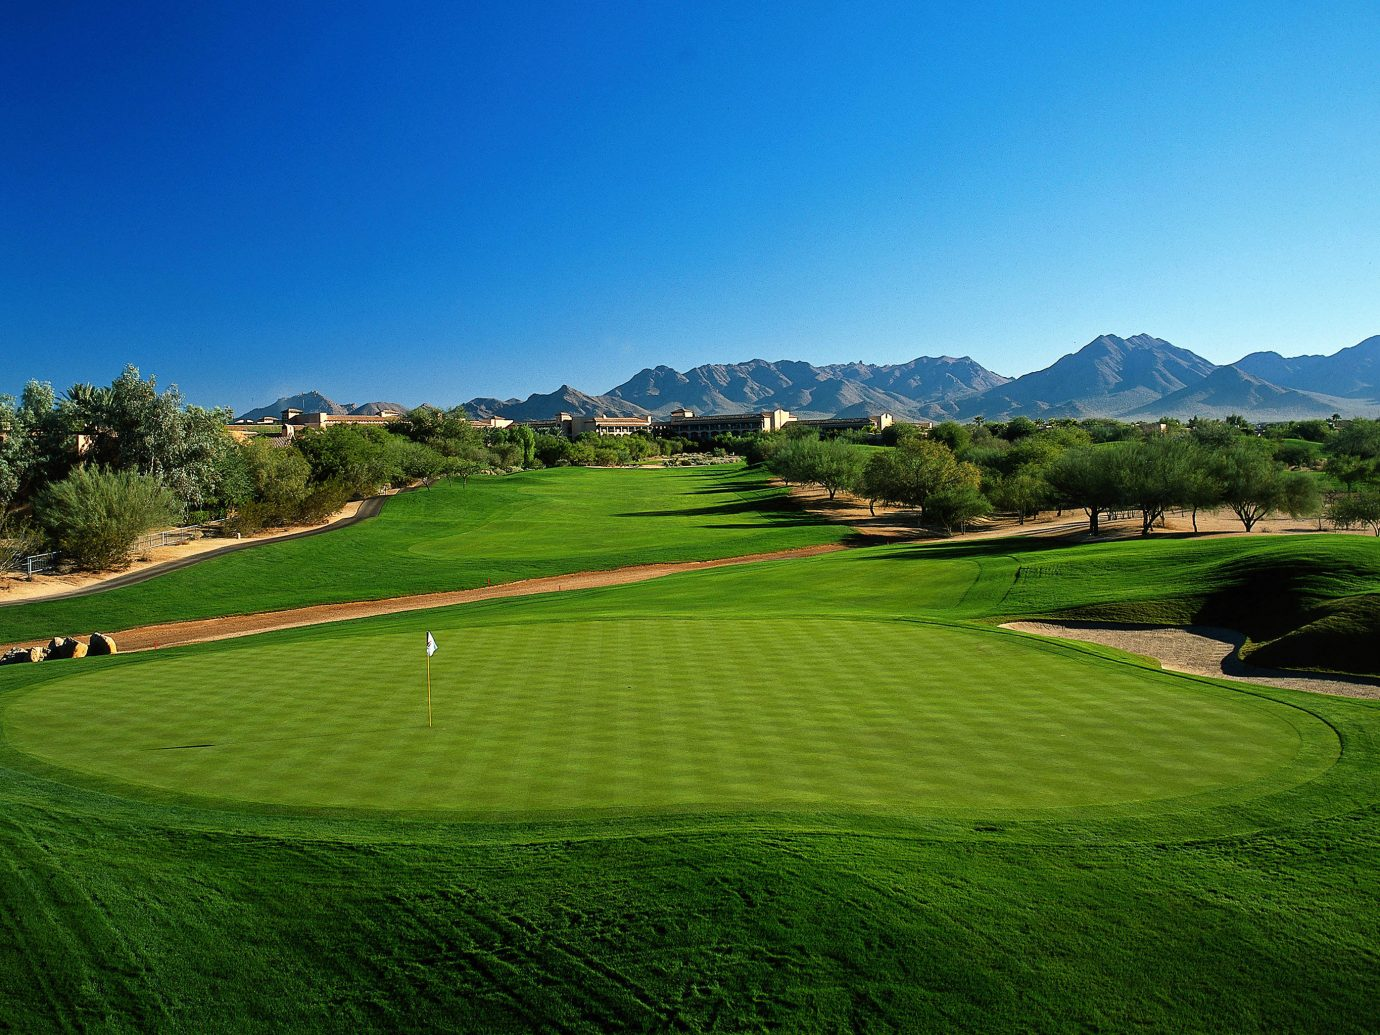 Health + Wellness Hotels Yoga Retreats grass sky outdoor structure field geographical feature Nature grassland sport venue grassy green golf course plain hill aerial photography golf club lush rural area landscape sports meadow plateau lawn day distance hillside highland